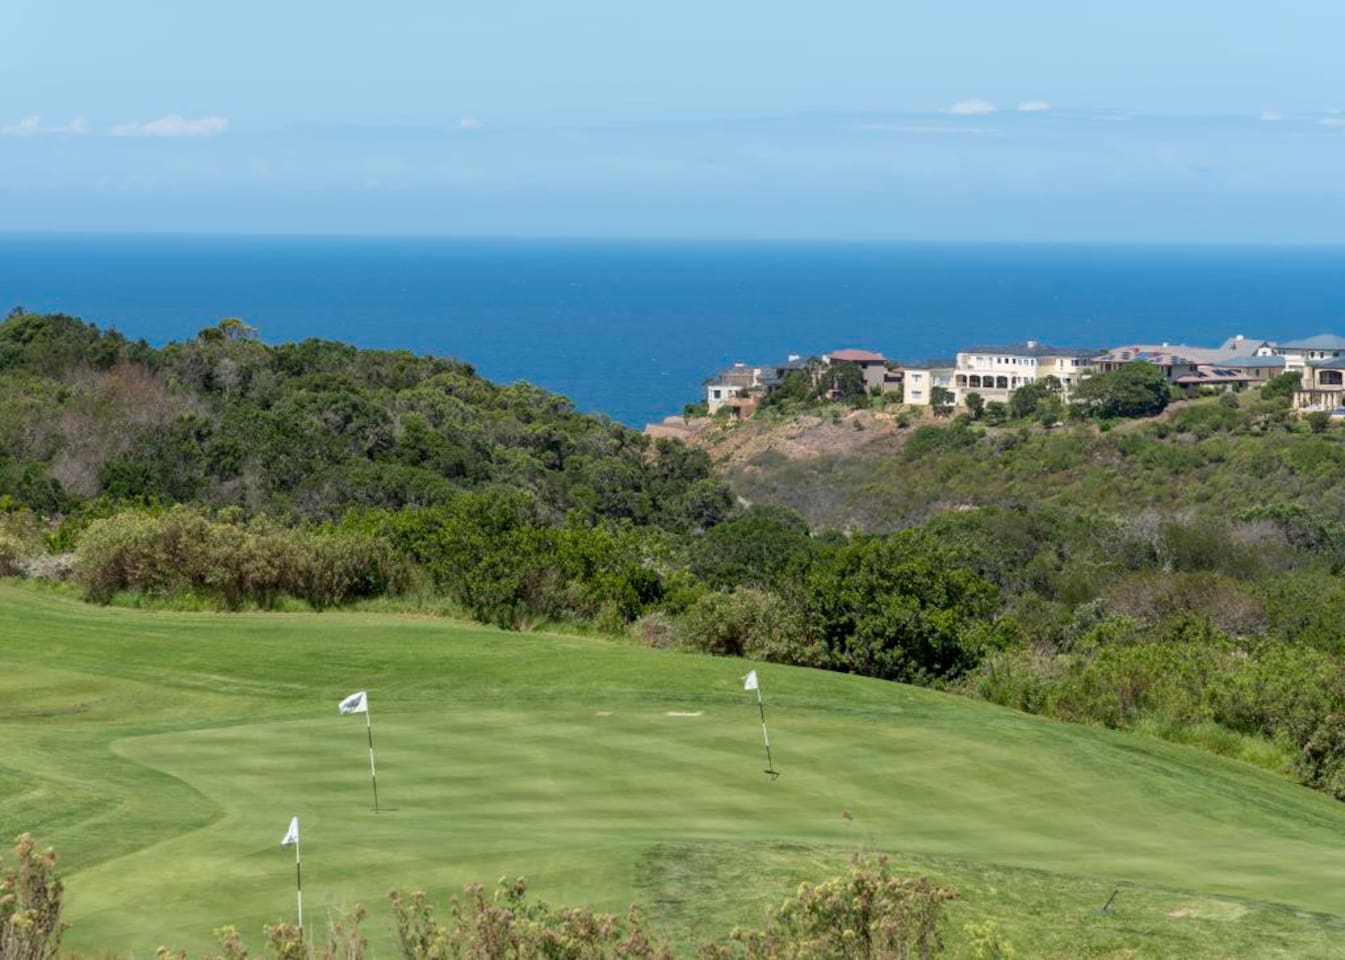 Golf at R500 per person per round with a free cart!!